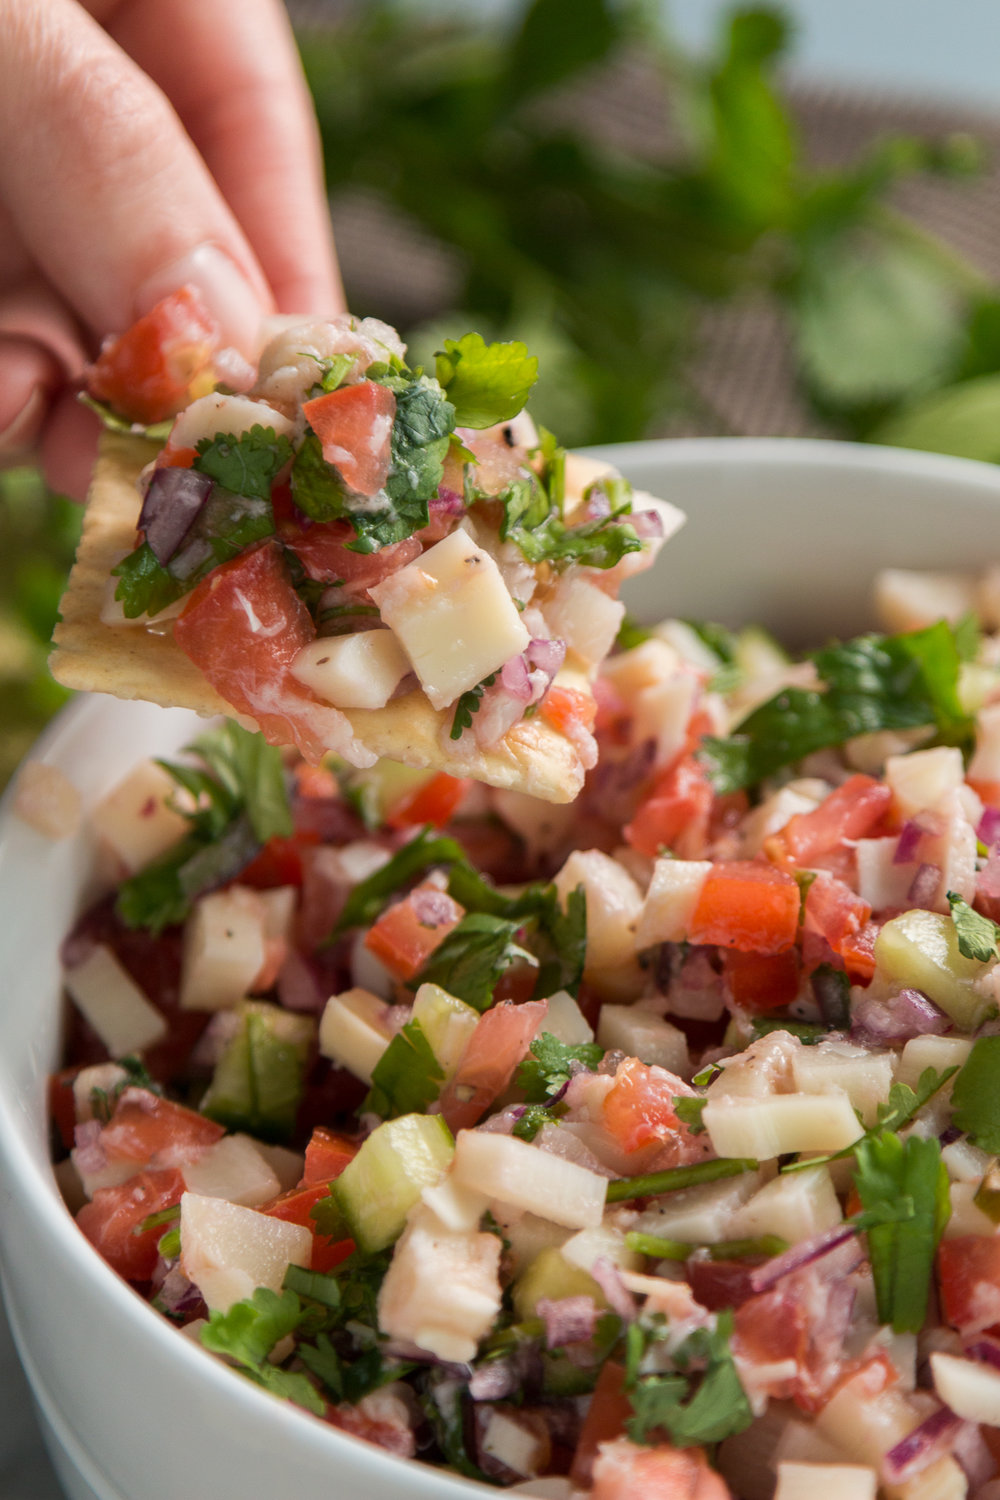 Vegan Ceviche With Hearts Of Palm Vegan Kids Nutrition Blog Vegan Ceviche Recipe Ceviche Recipe Vegetarian Ceviche